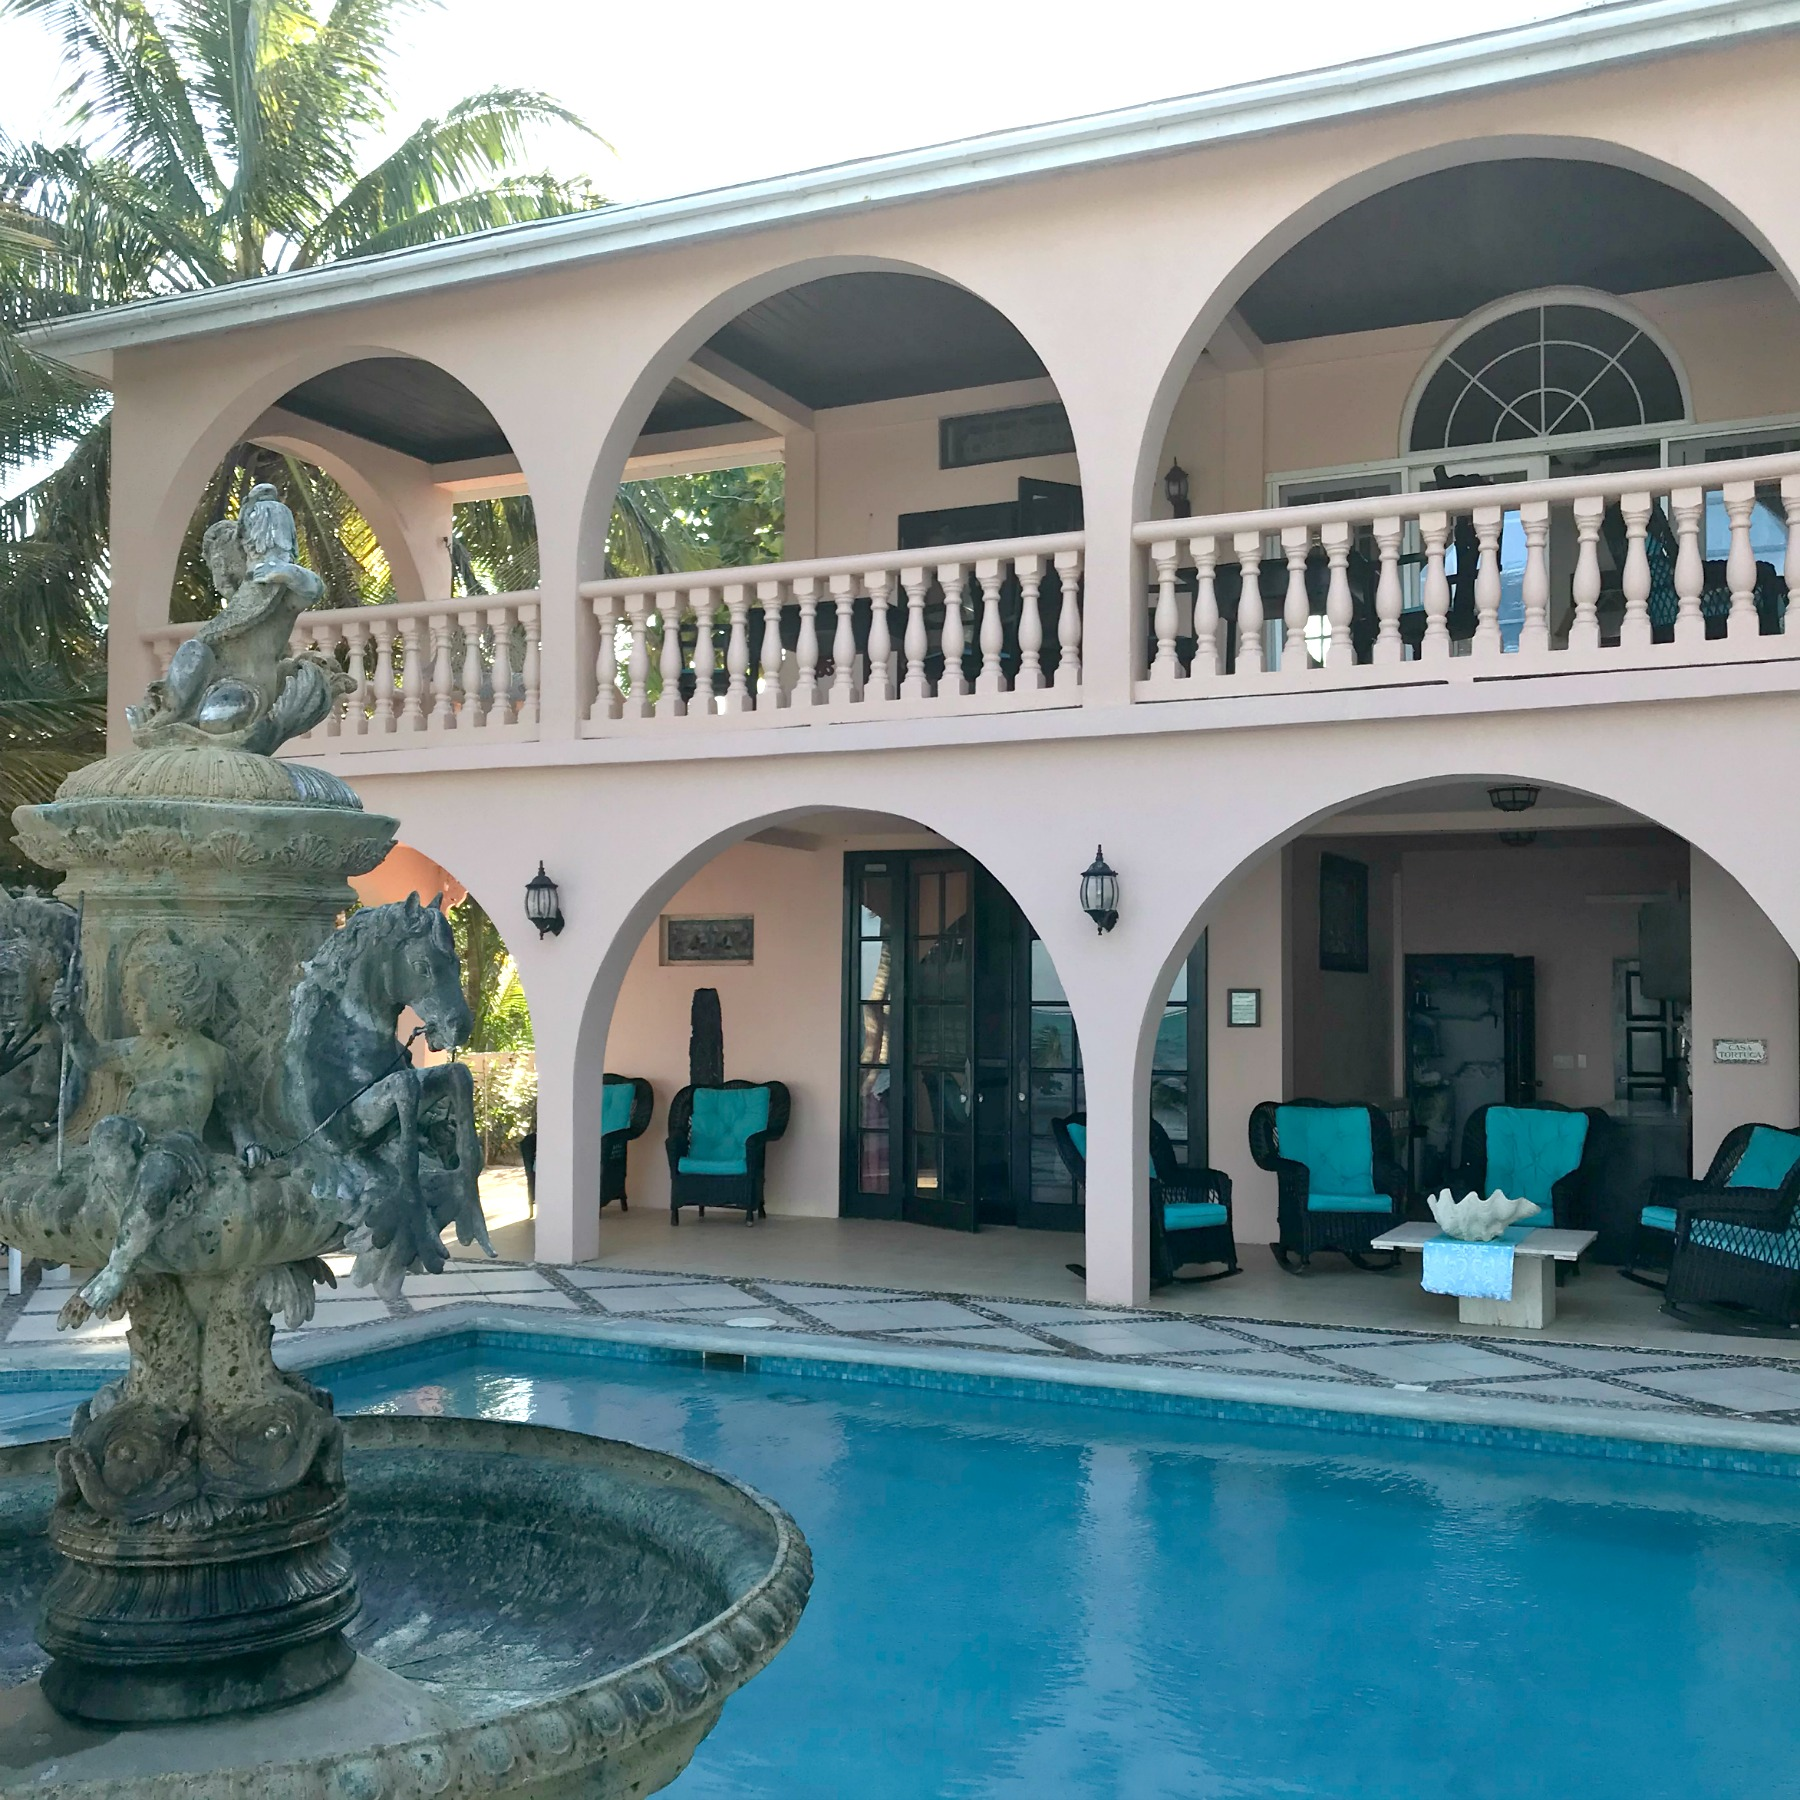 Villa in Belize | DestinationYOU Adventure Retreat | Tami McVay - Business & Lifestyle Strategist | Mentor